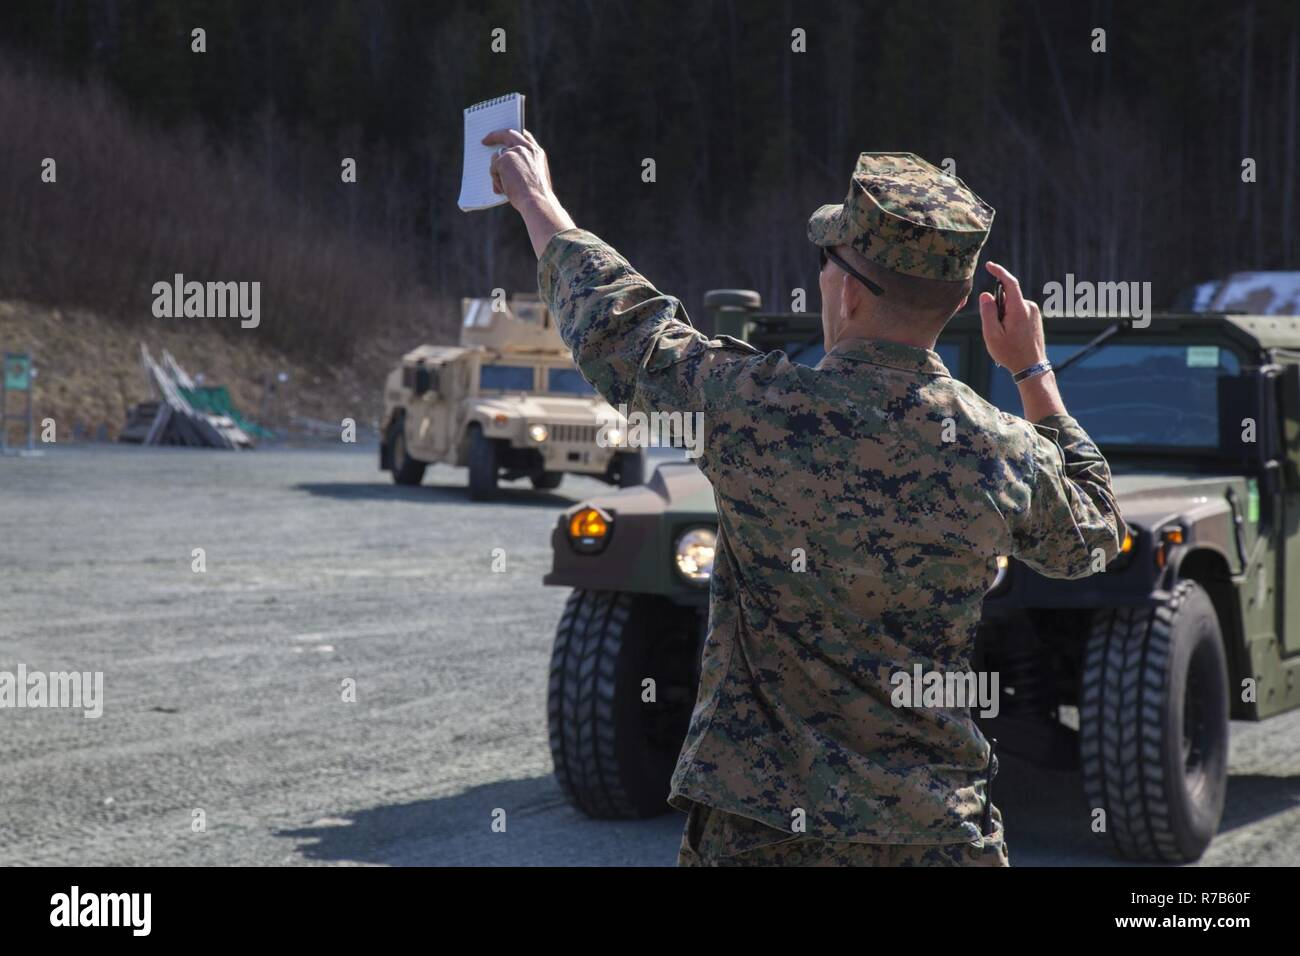 U.S. Marine Corps Cpl. Buck Ems, a Landing Support Specialist with 2nd Transportation Support Battalion, guides Humvees to park in the assembly area following a convoy at Strategic Mobility Exercise 17 (STRATMOBEX) near Stjørdal, Norway, May 3, 2017. During this exercise Marines pulled vehicles from caves of the Marine Corps Prepositioning Program in Norway (MCPP-N). MCPP-N provides an alternative to shipping equipment from the United States in order to decrease operation response times. Stock Photo